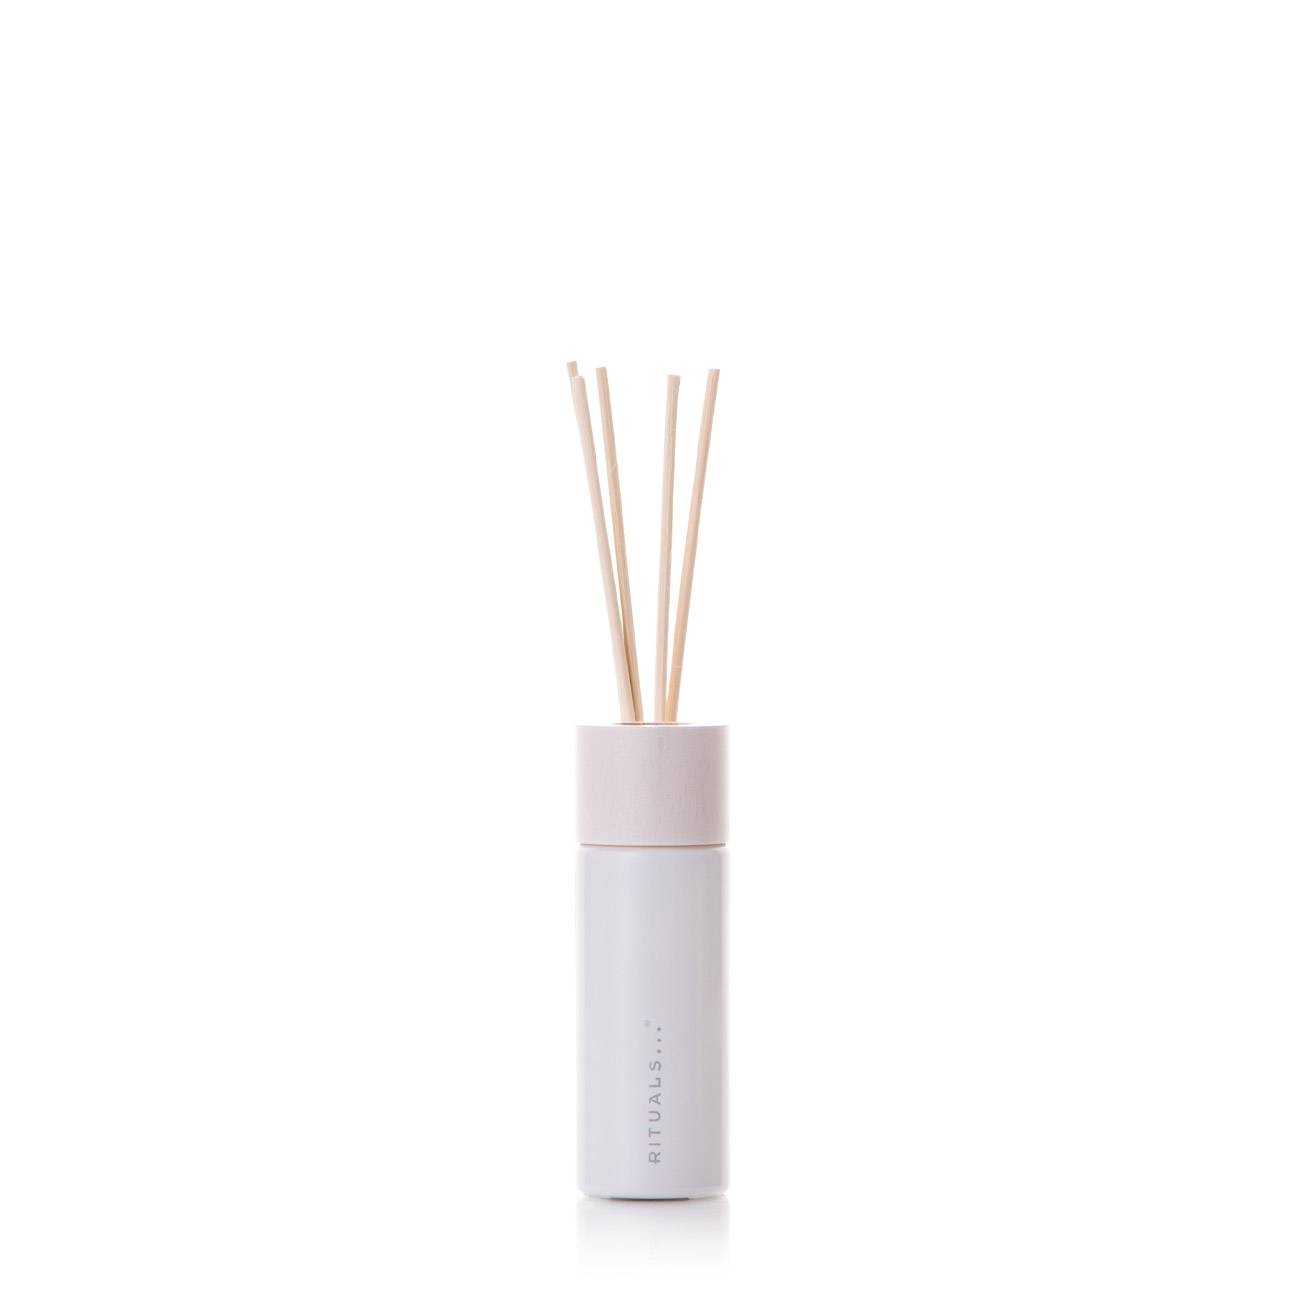 SAKURA MINI FRAGRANCE STICKS imagine produs